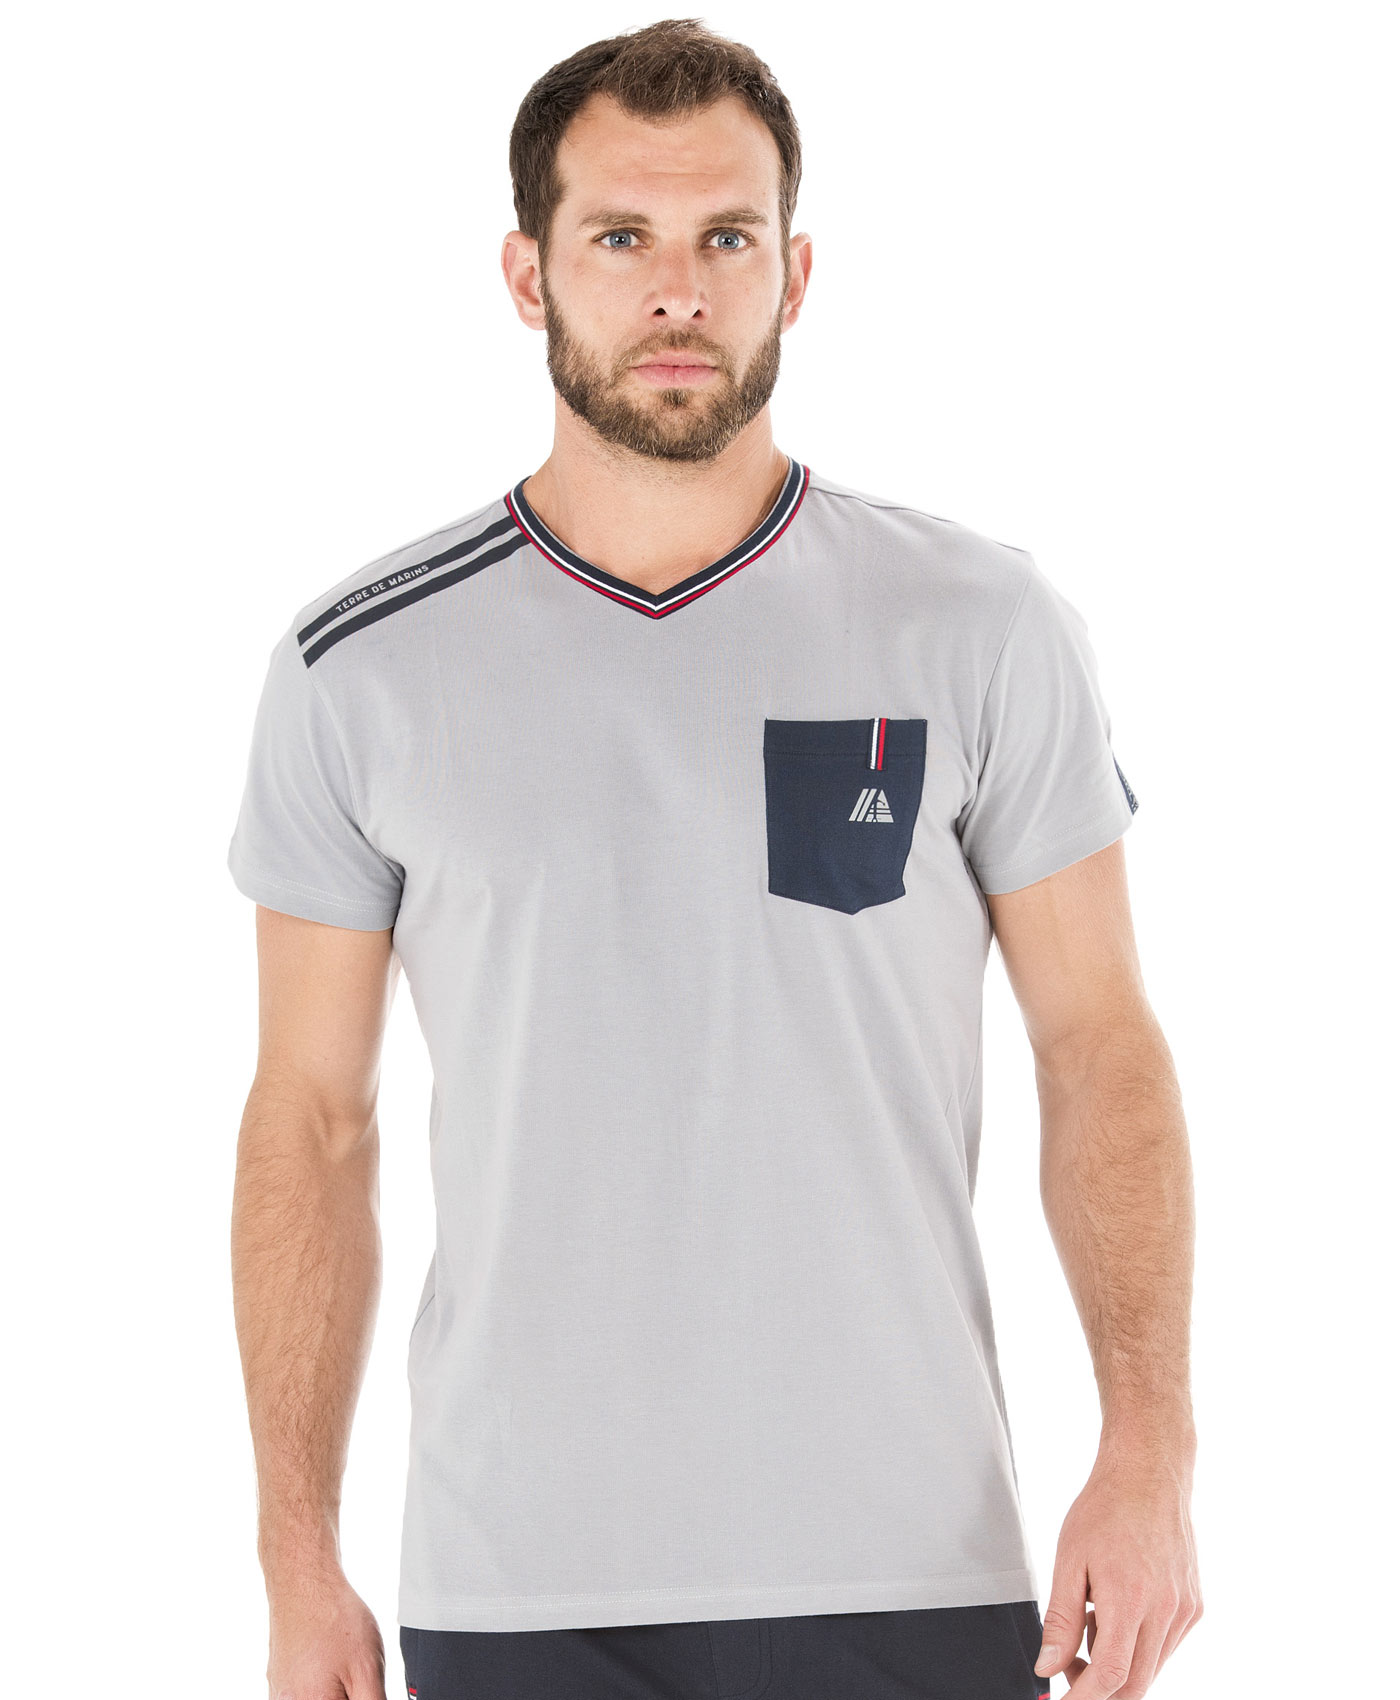 Tee-shirt manches courtes homme gris galet - Mode marine Homme